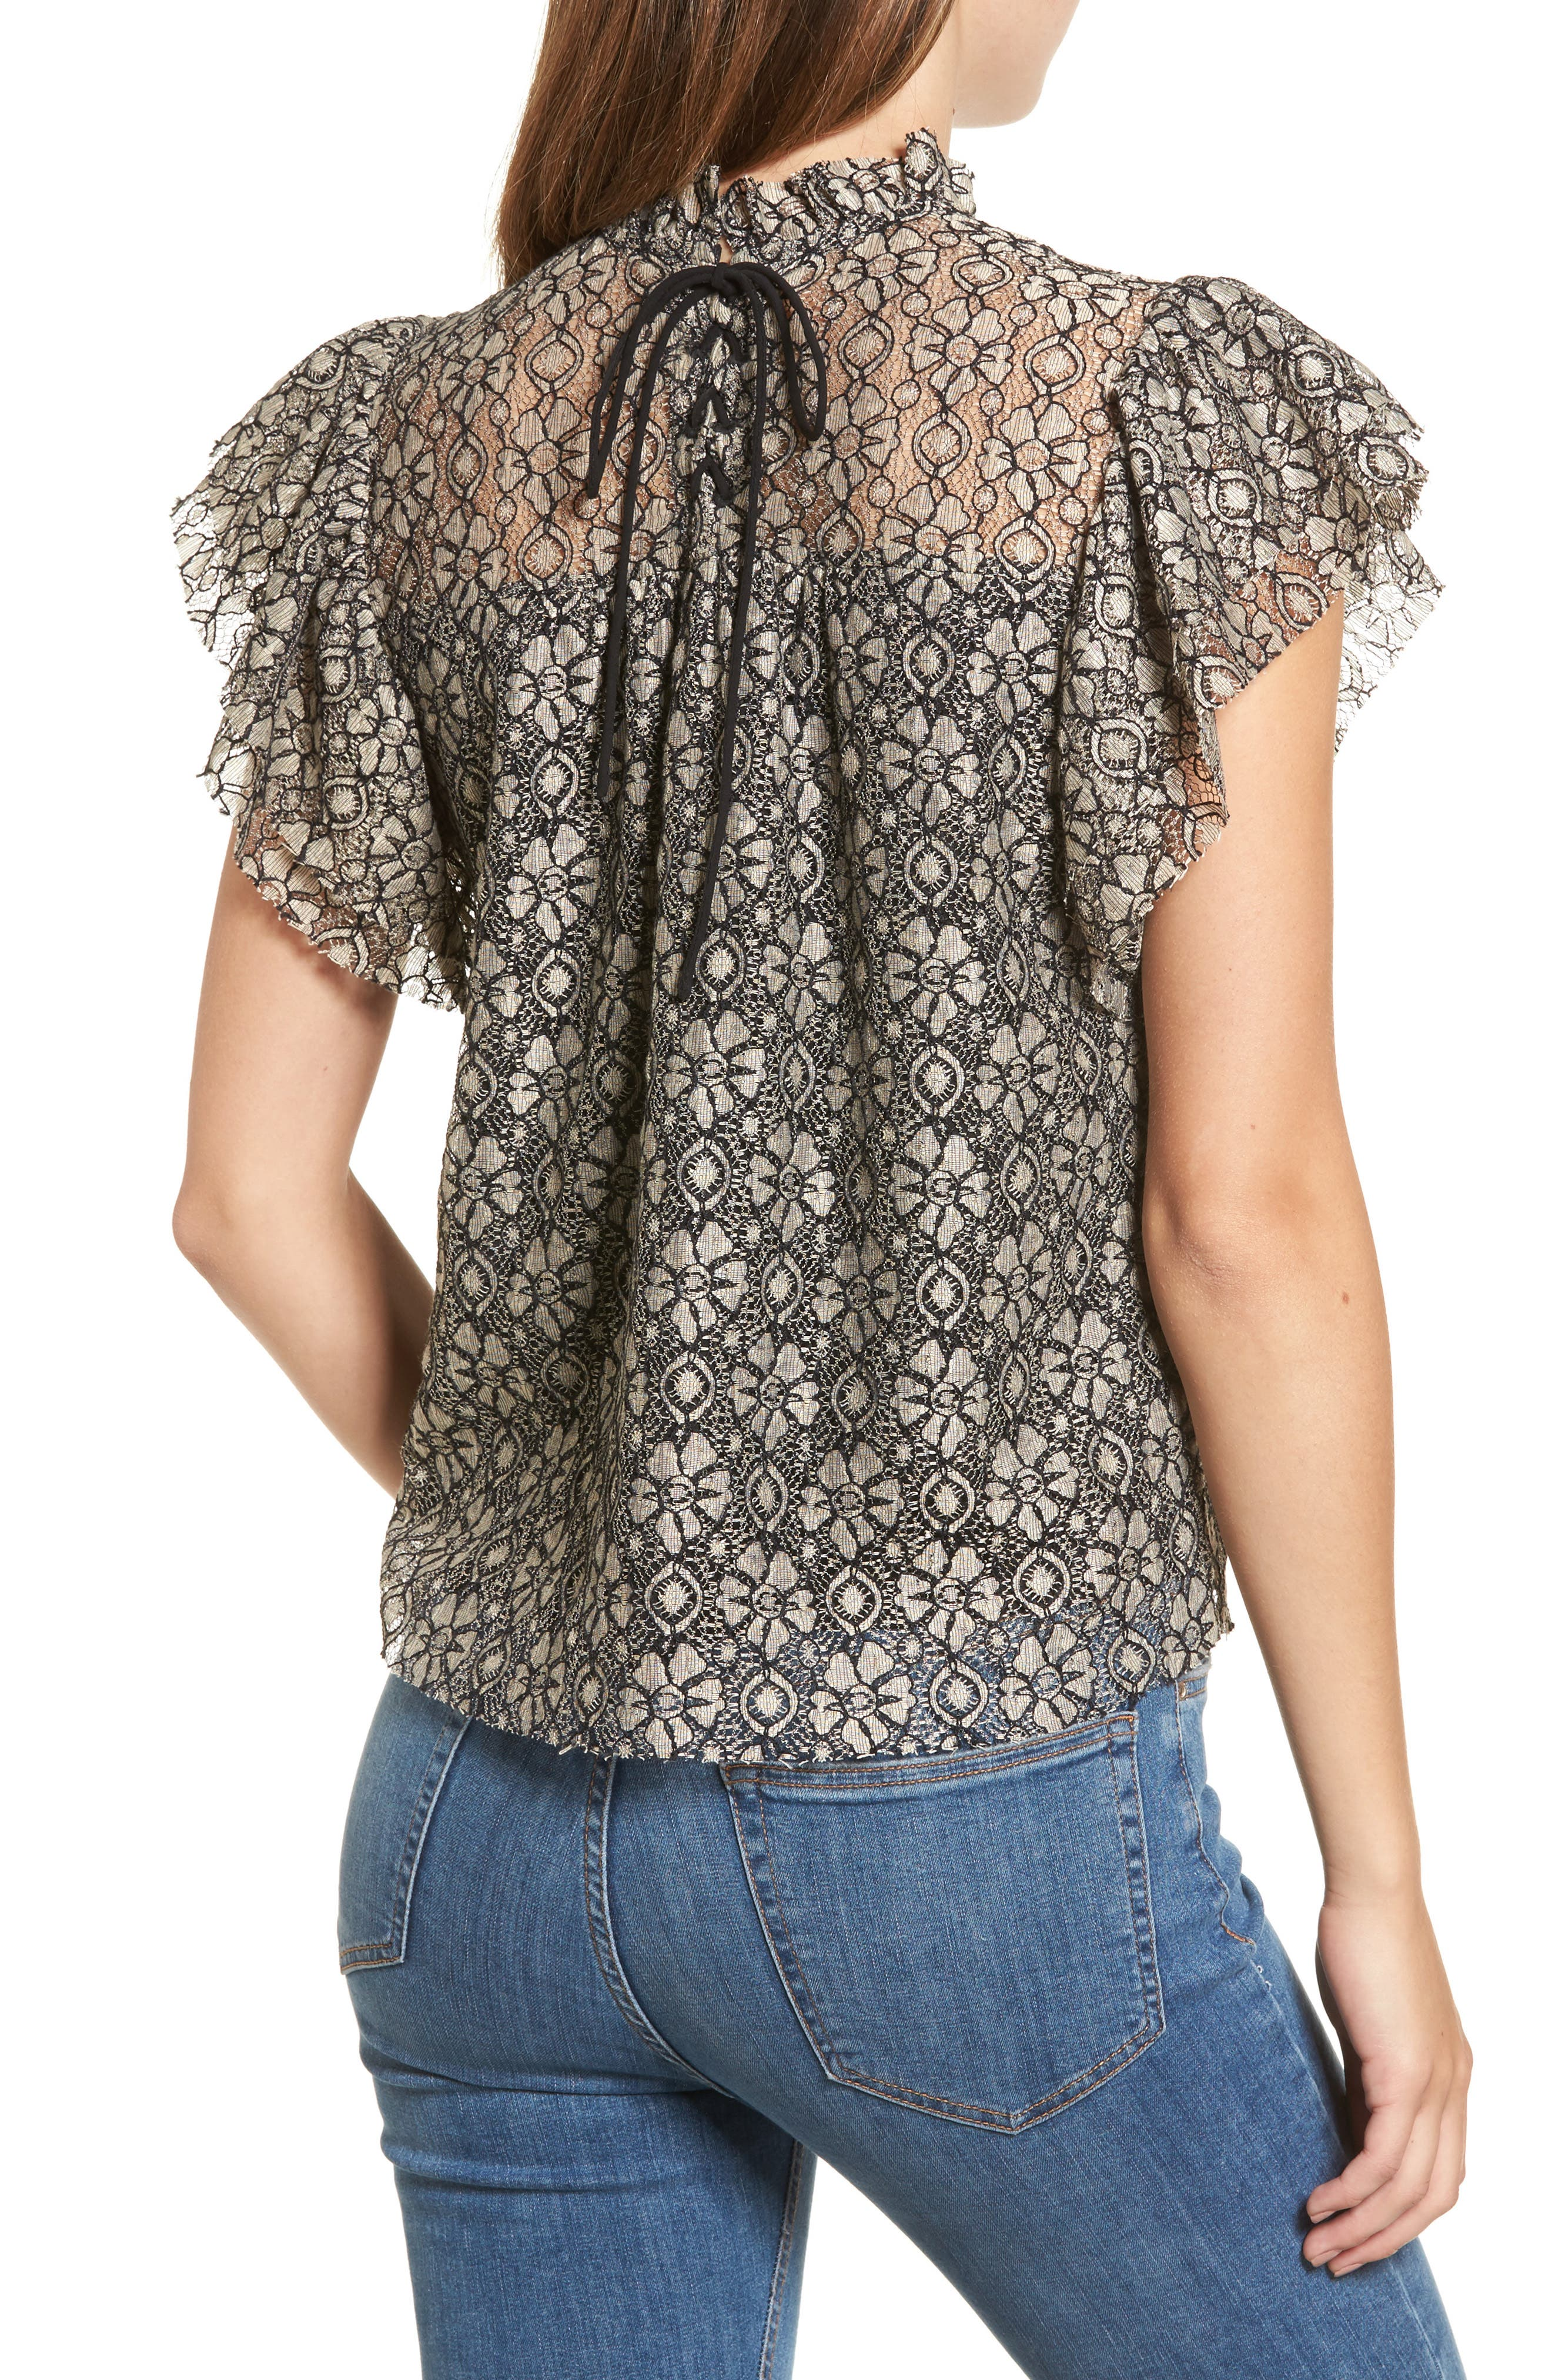 Ruffle Lace Top,                             Alternate thumbnail 2, color,                             Taupe/ Black